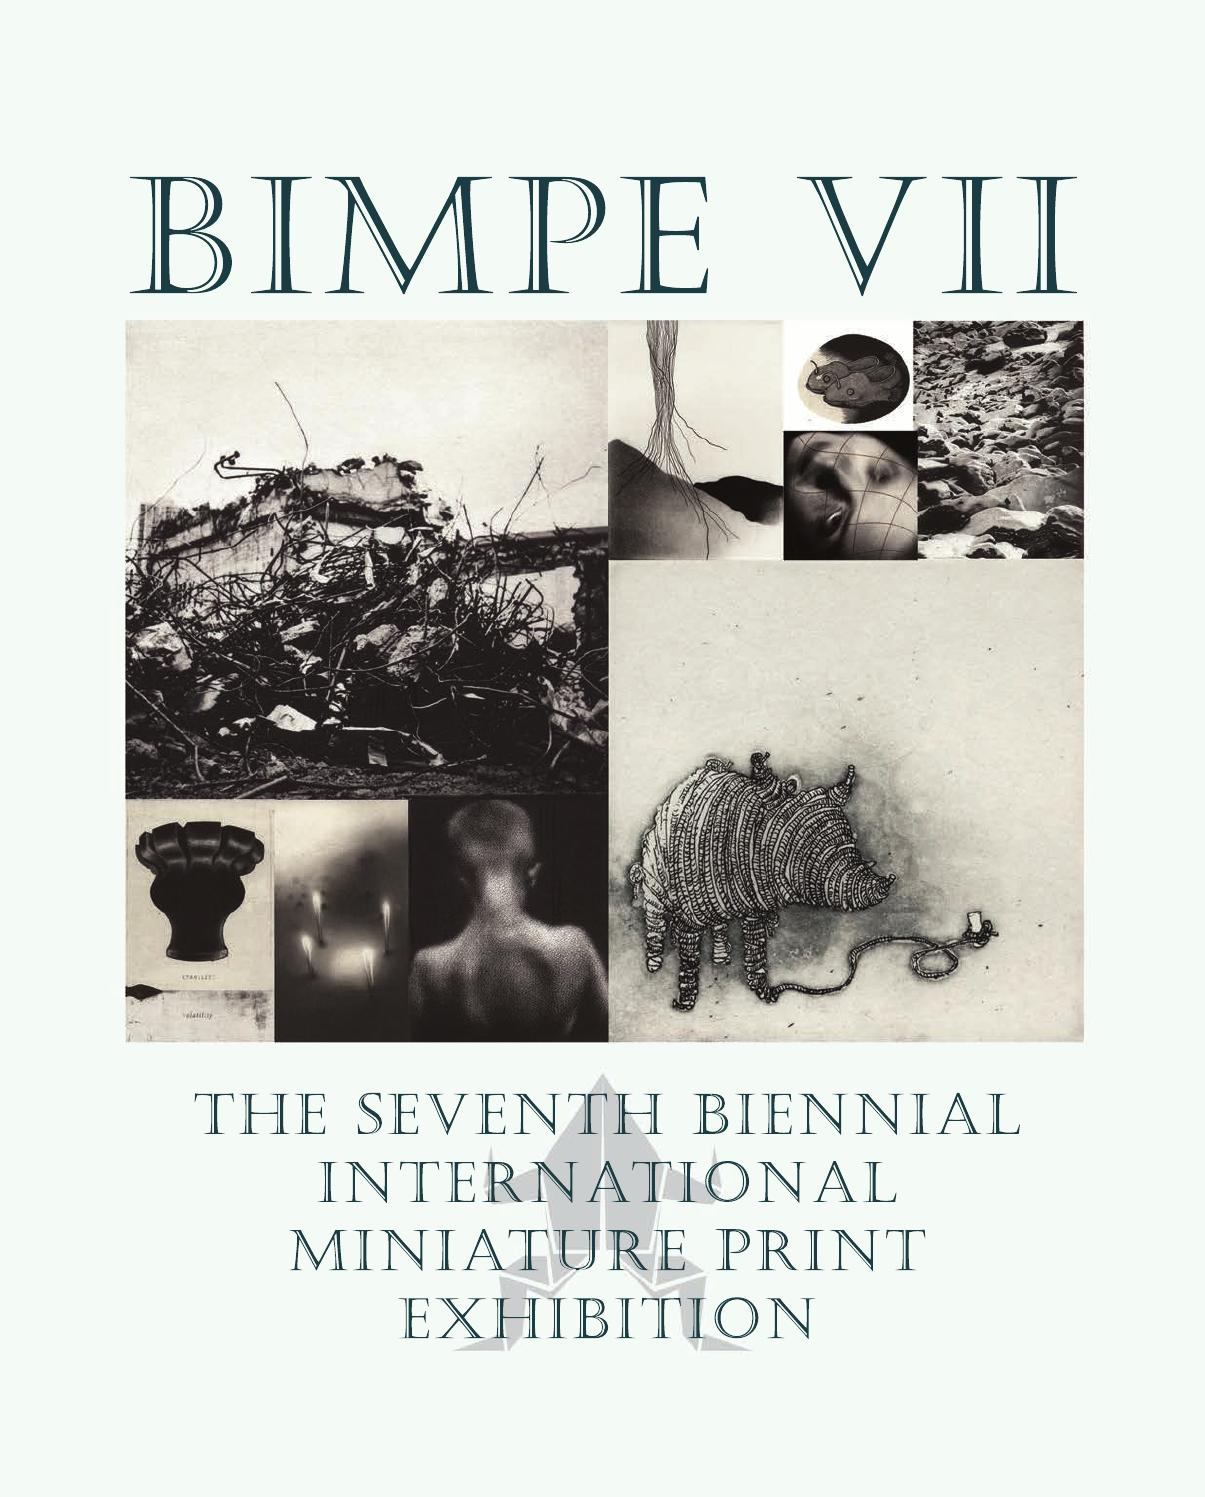 Bimpe VII Exhibition Catalogue by Peter Braune - issuu